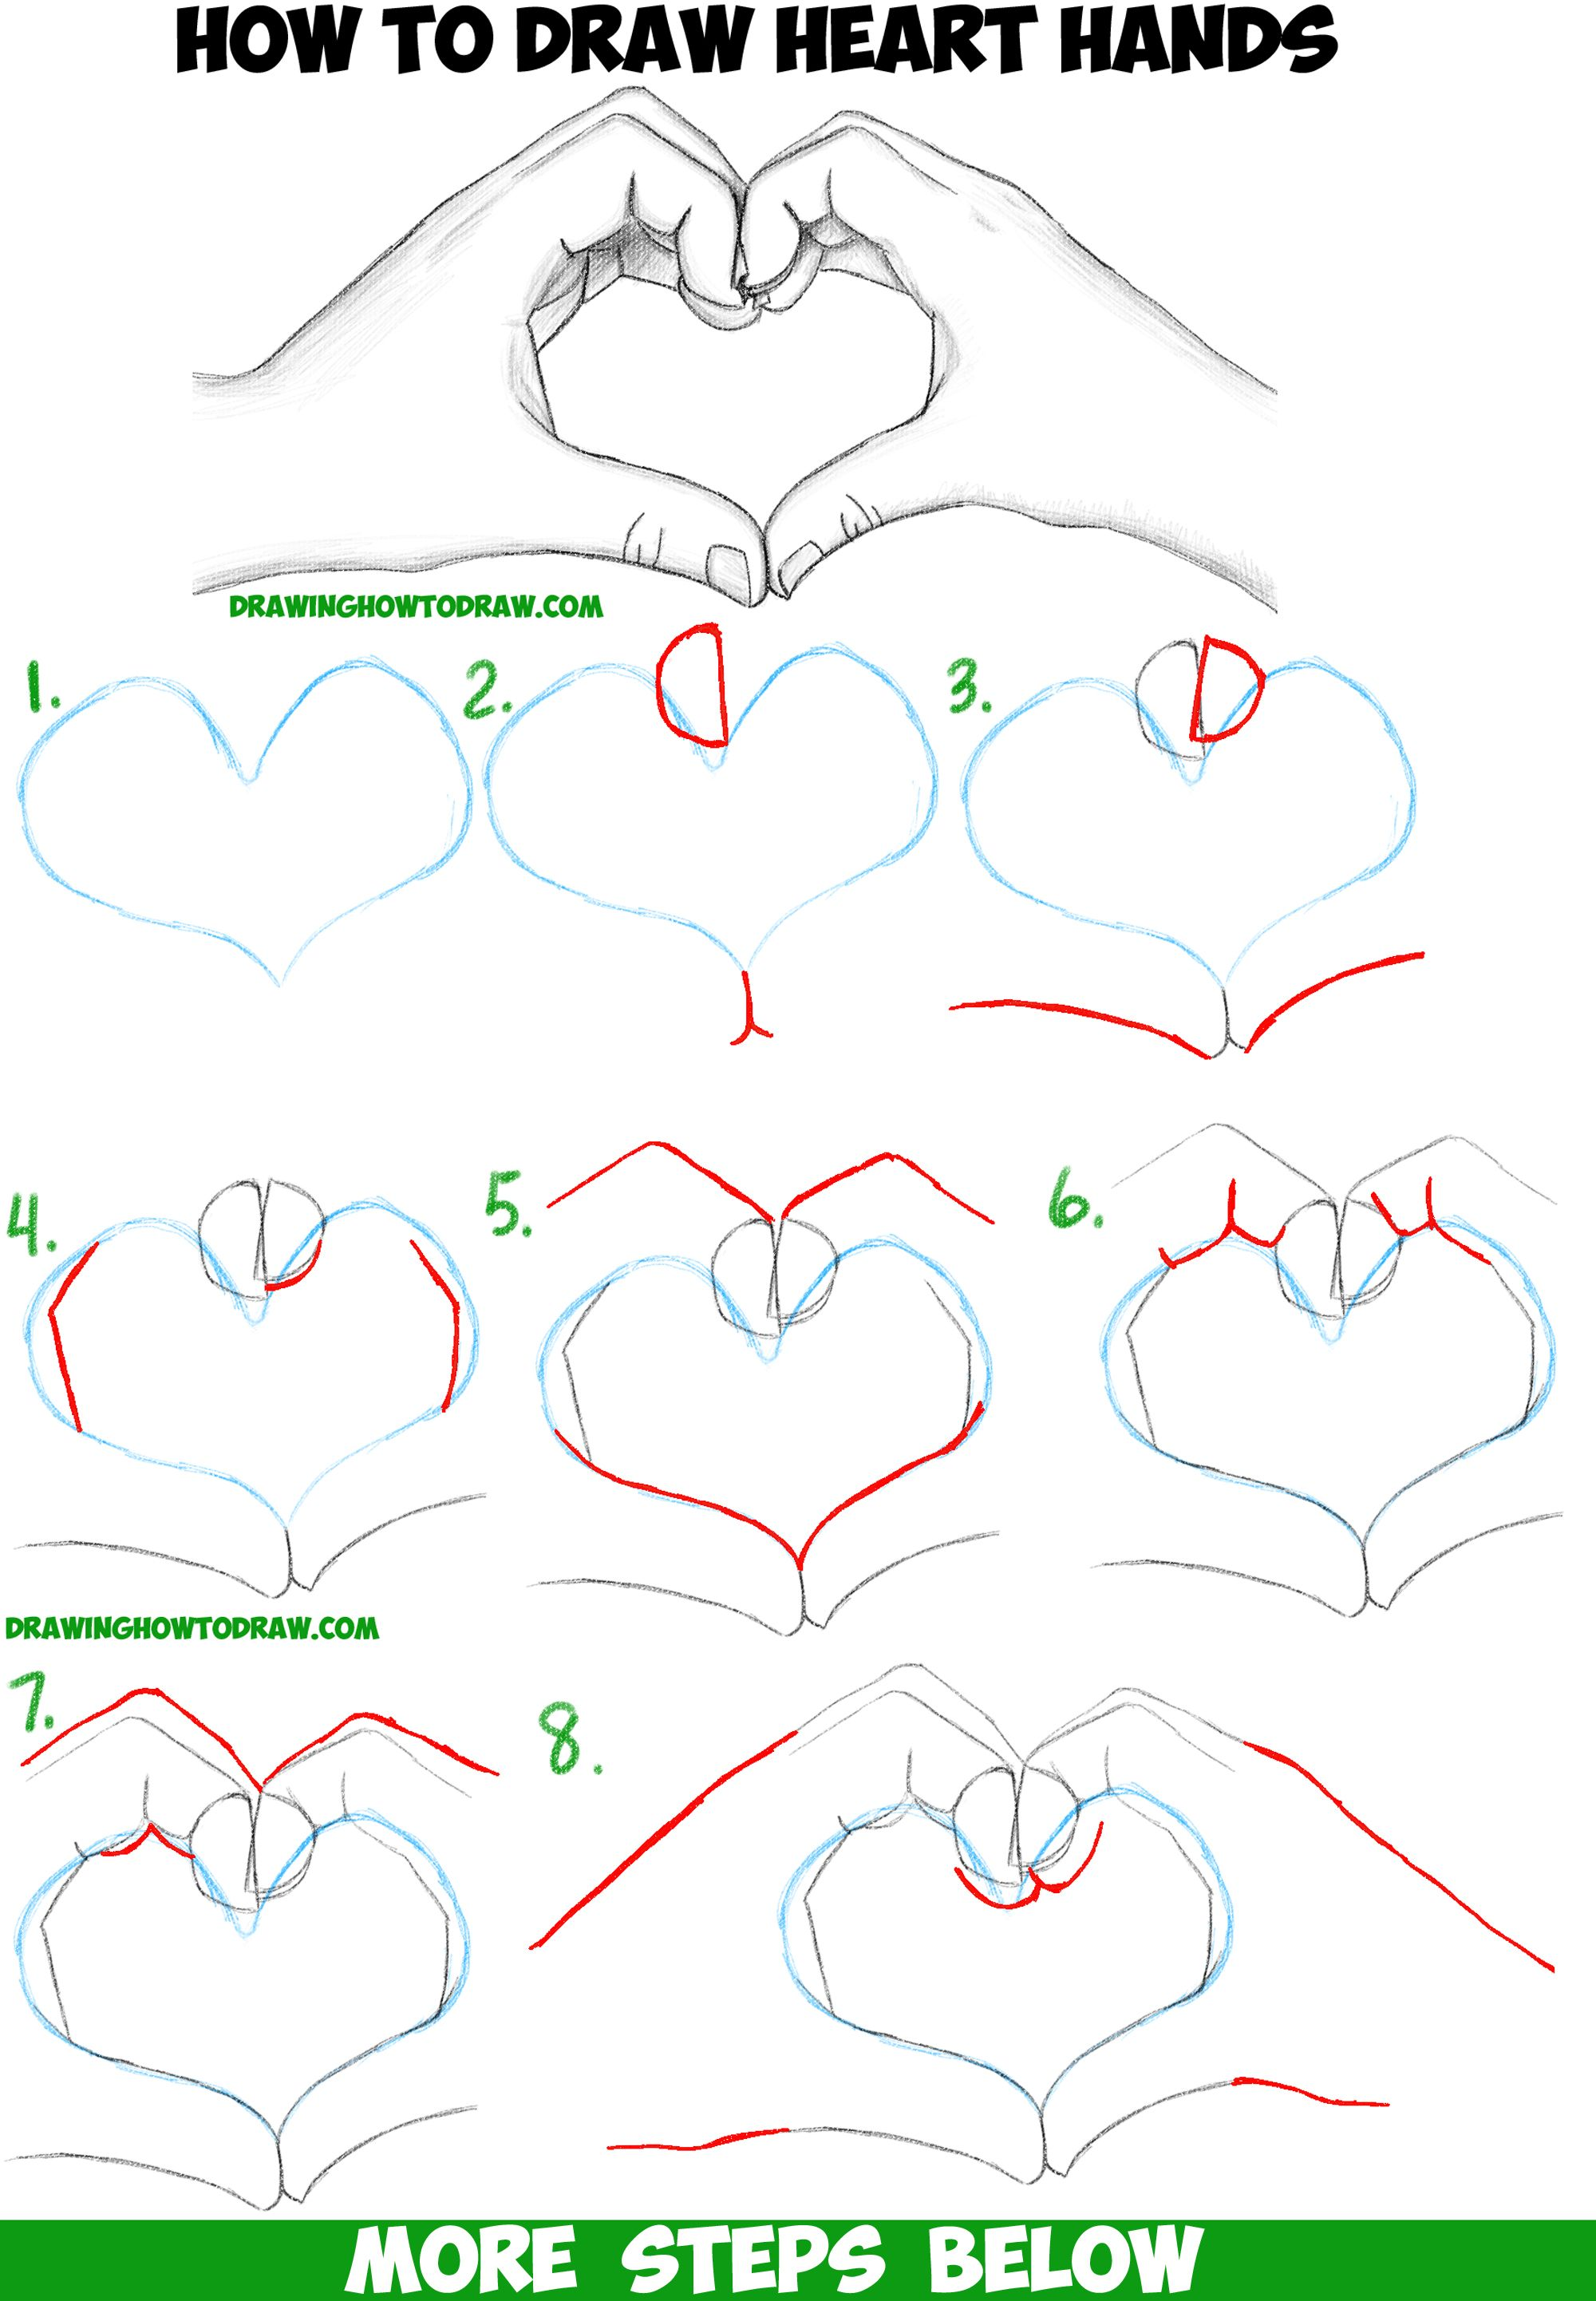 How to draw heart hands in easy to follow step by step for Learn to draw cartoons step by step lessons